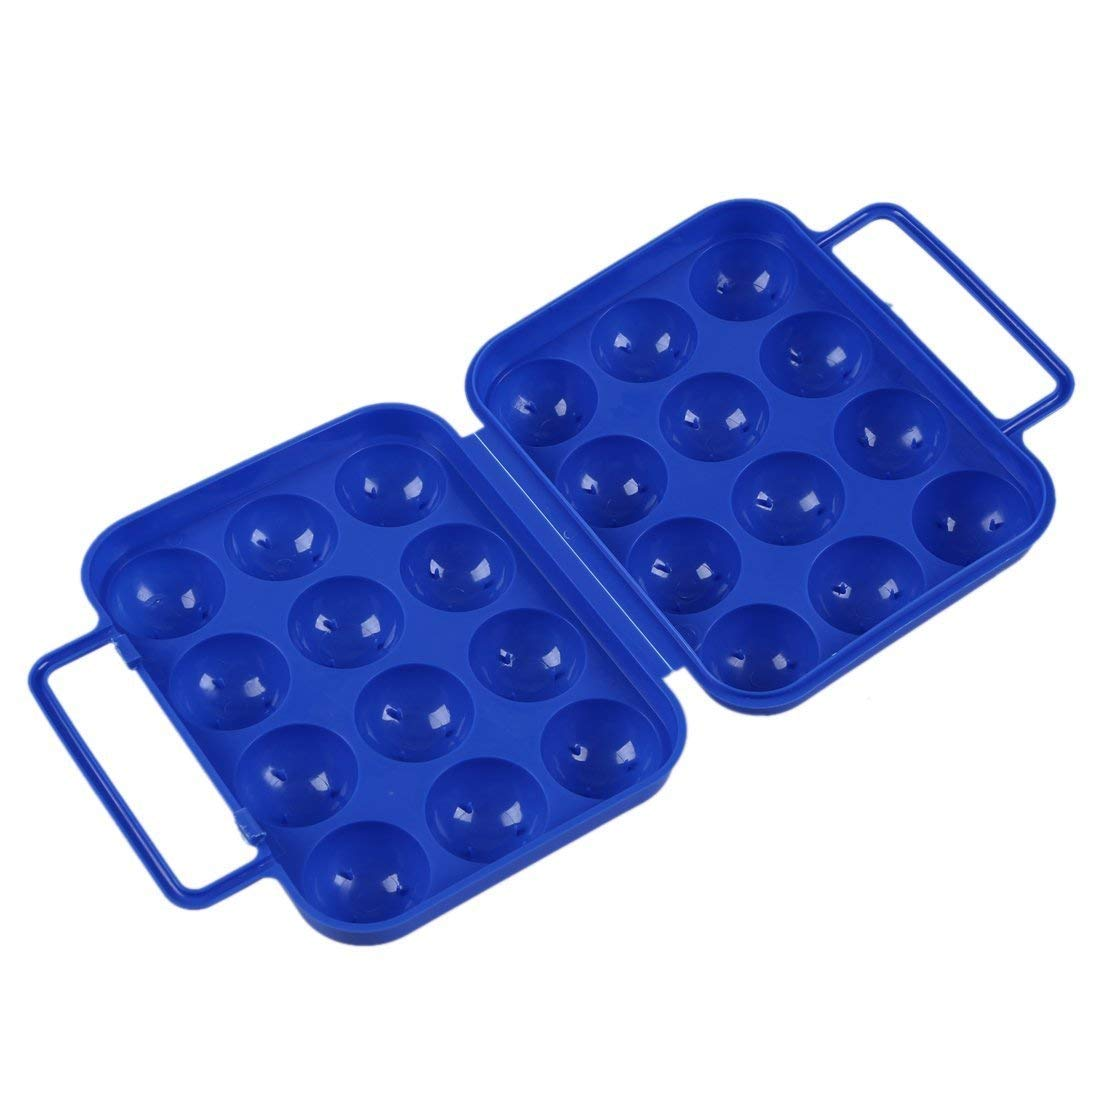 TOOGOO(R)Blue Folding Plastic Eggs Carry Case Box (For 12 eggs) for Picnic Container